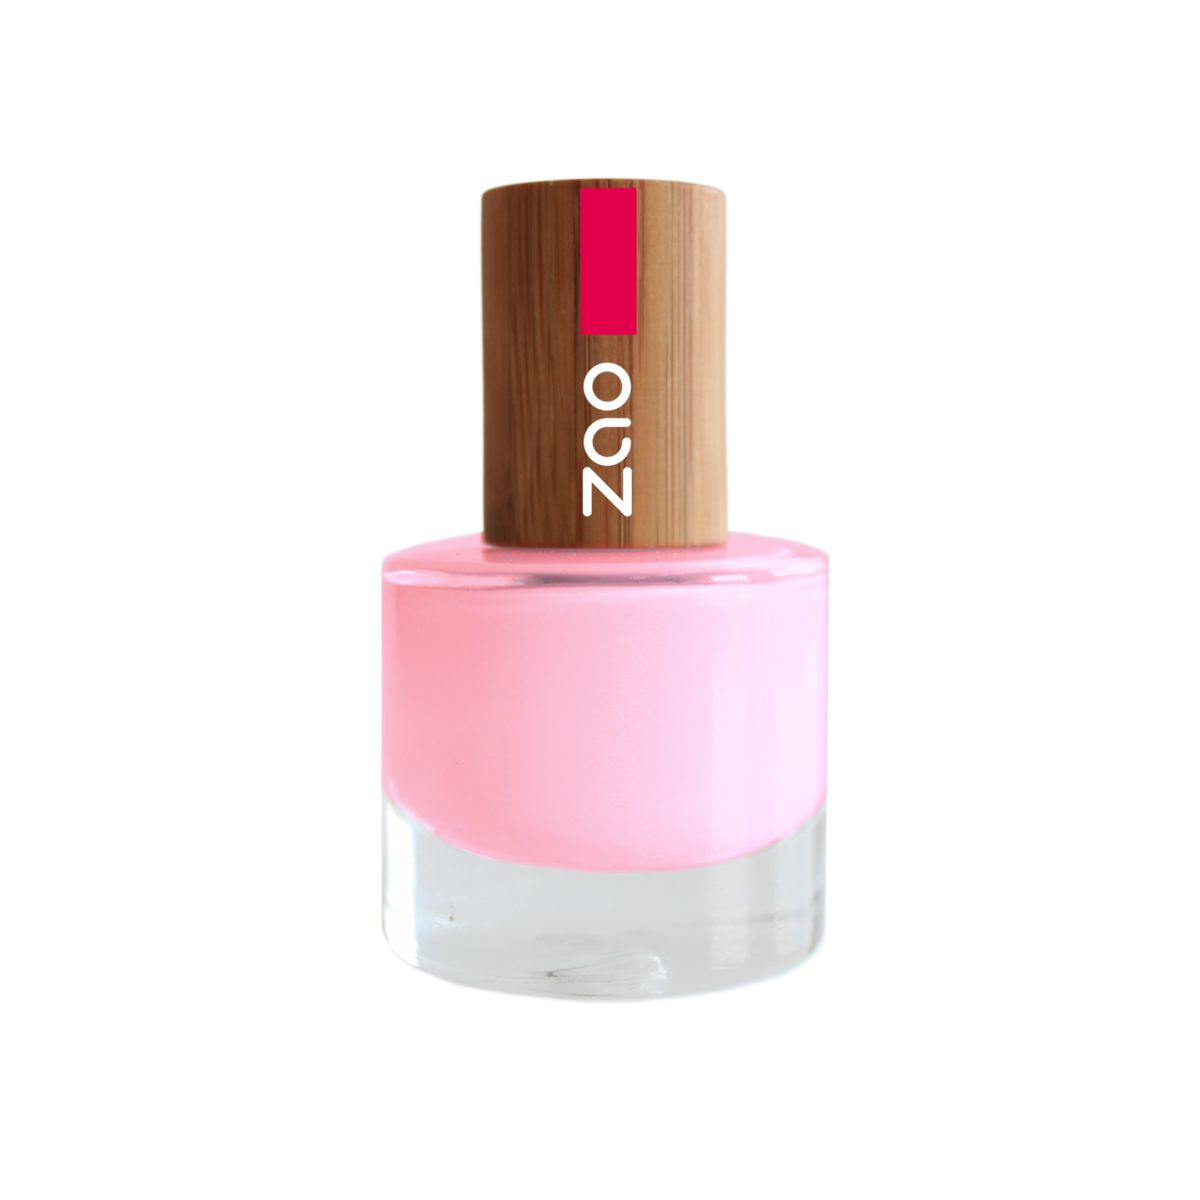 VERNIS A ONGLES ROSE 4- EASY PARIS-Grossiste maquillage